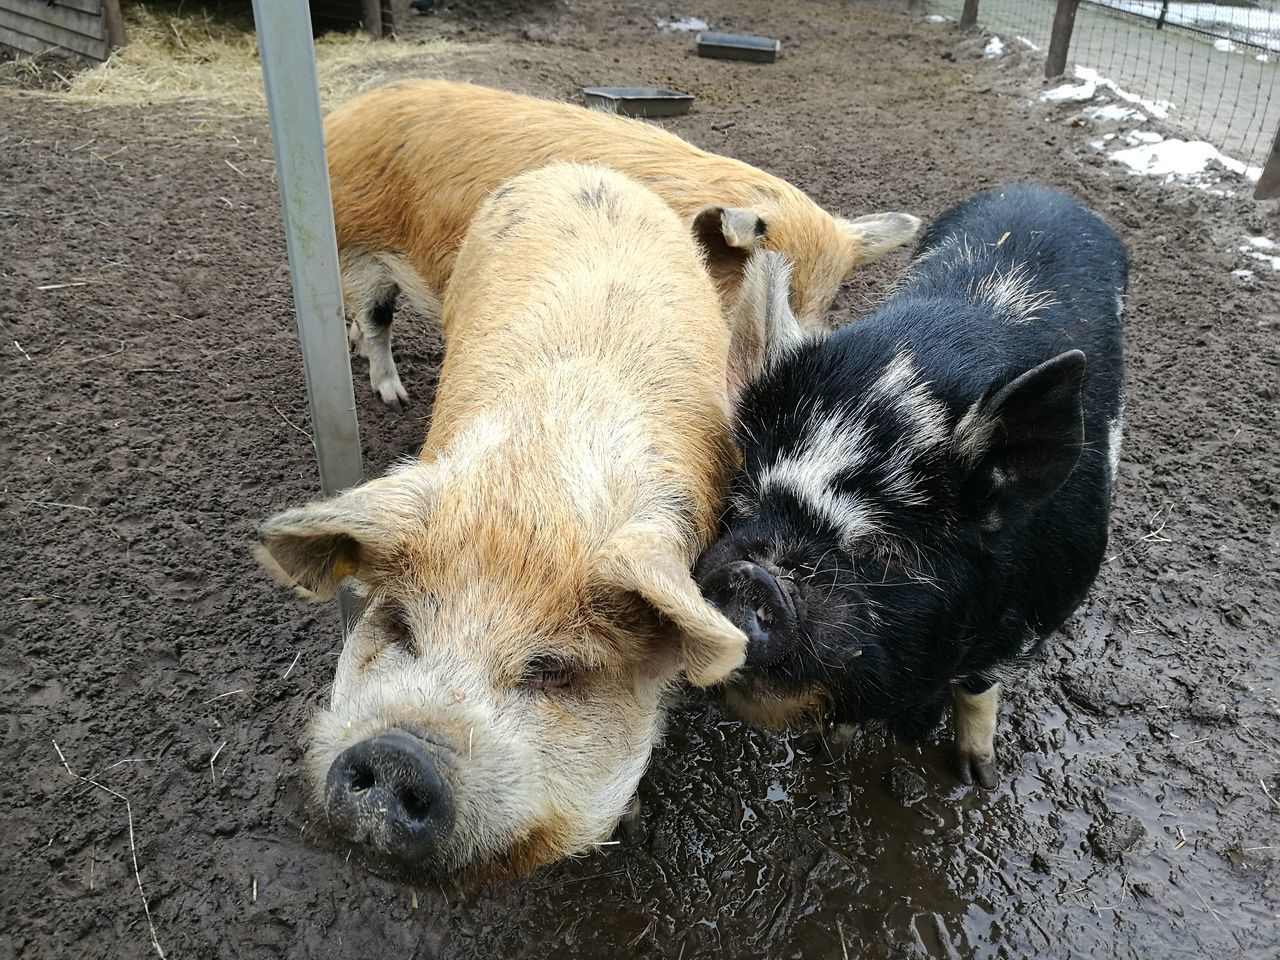 Mammal Animal Themes High Angle View Domestic Animals Outdoors Dog No People Nature Day Close-up Pigs